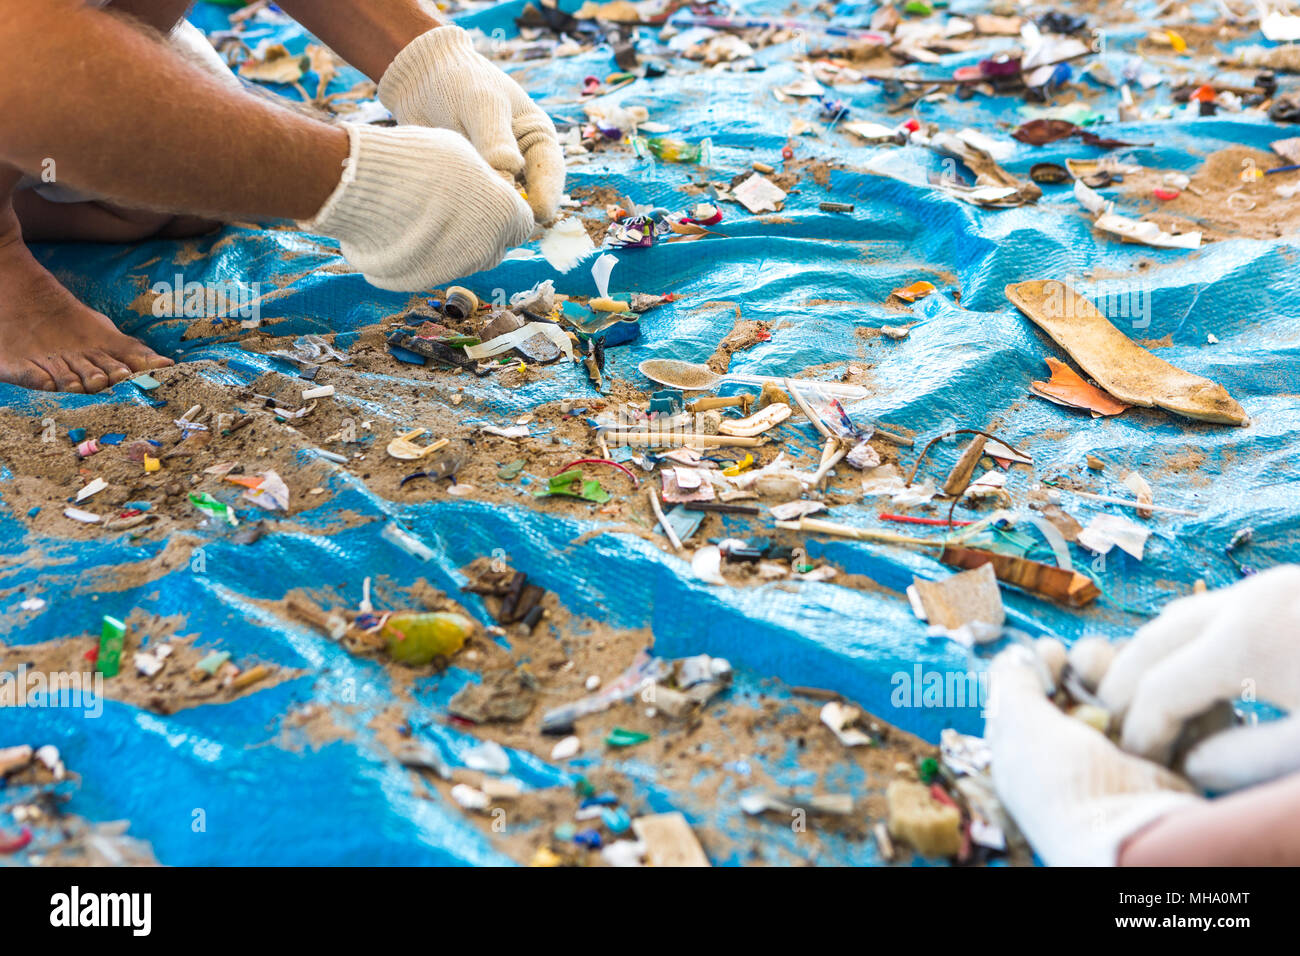 Beach Cleaning. Cleaning dirty beaches by the action of man. Sustainability of the planet and preservation of nature. - Stock Image